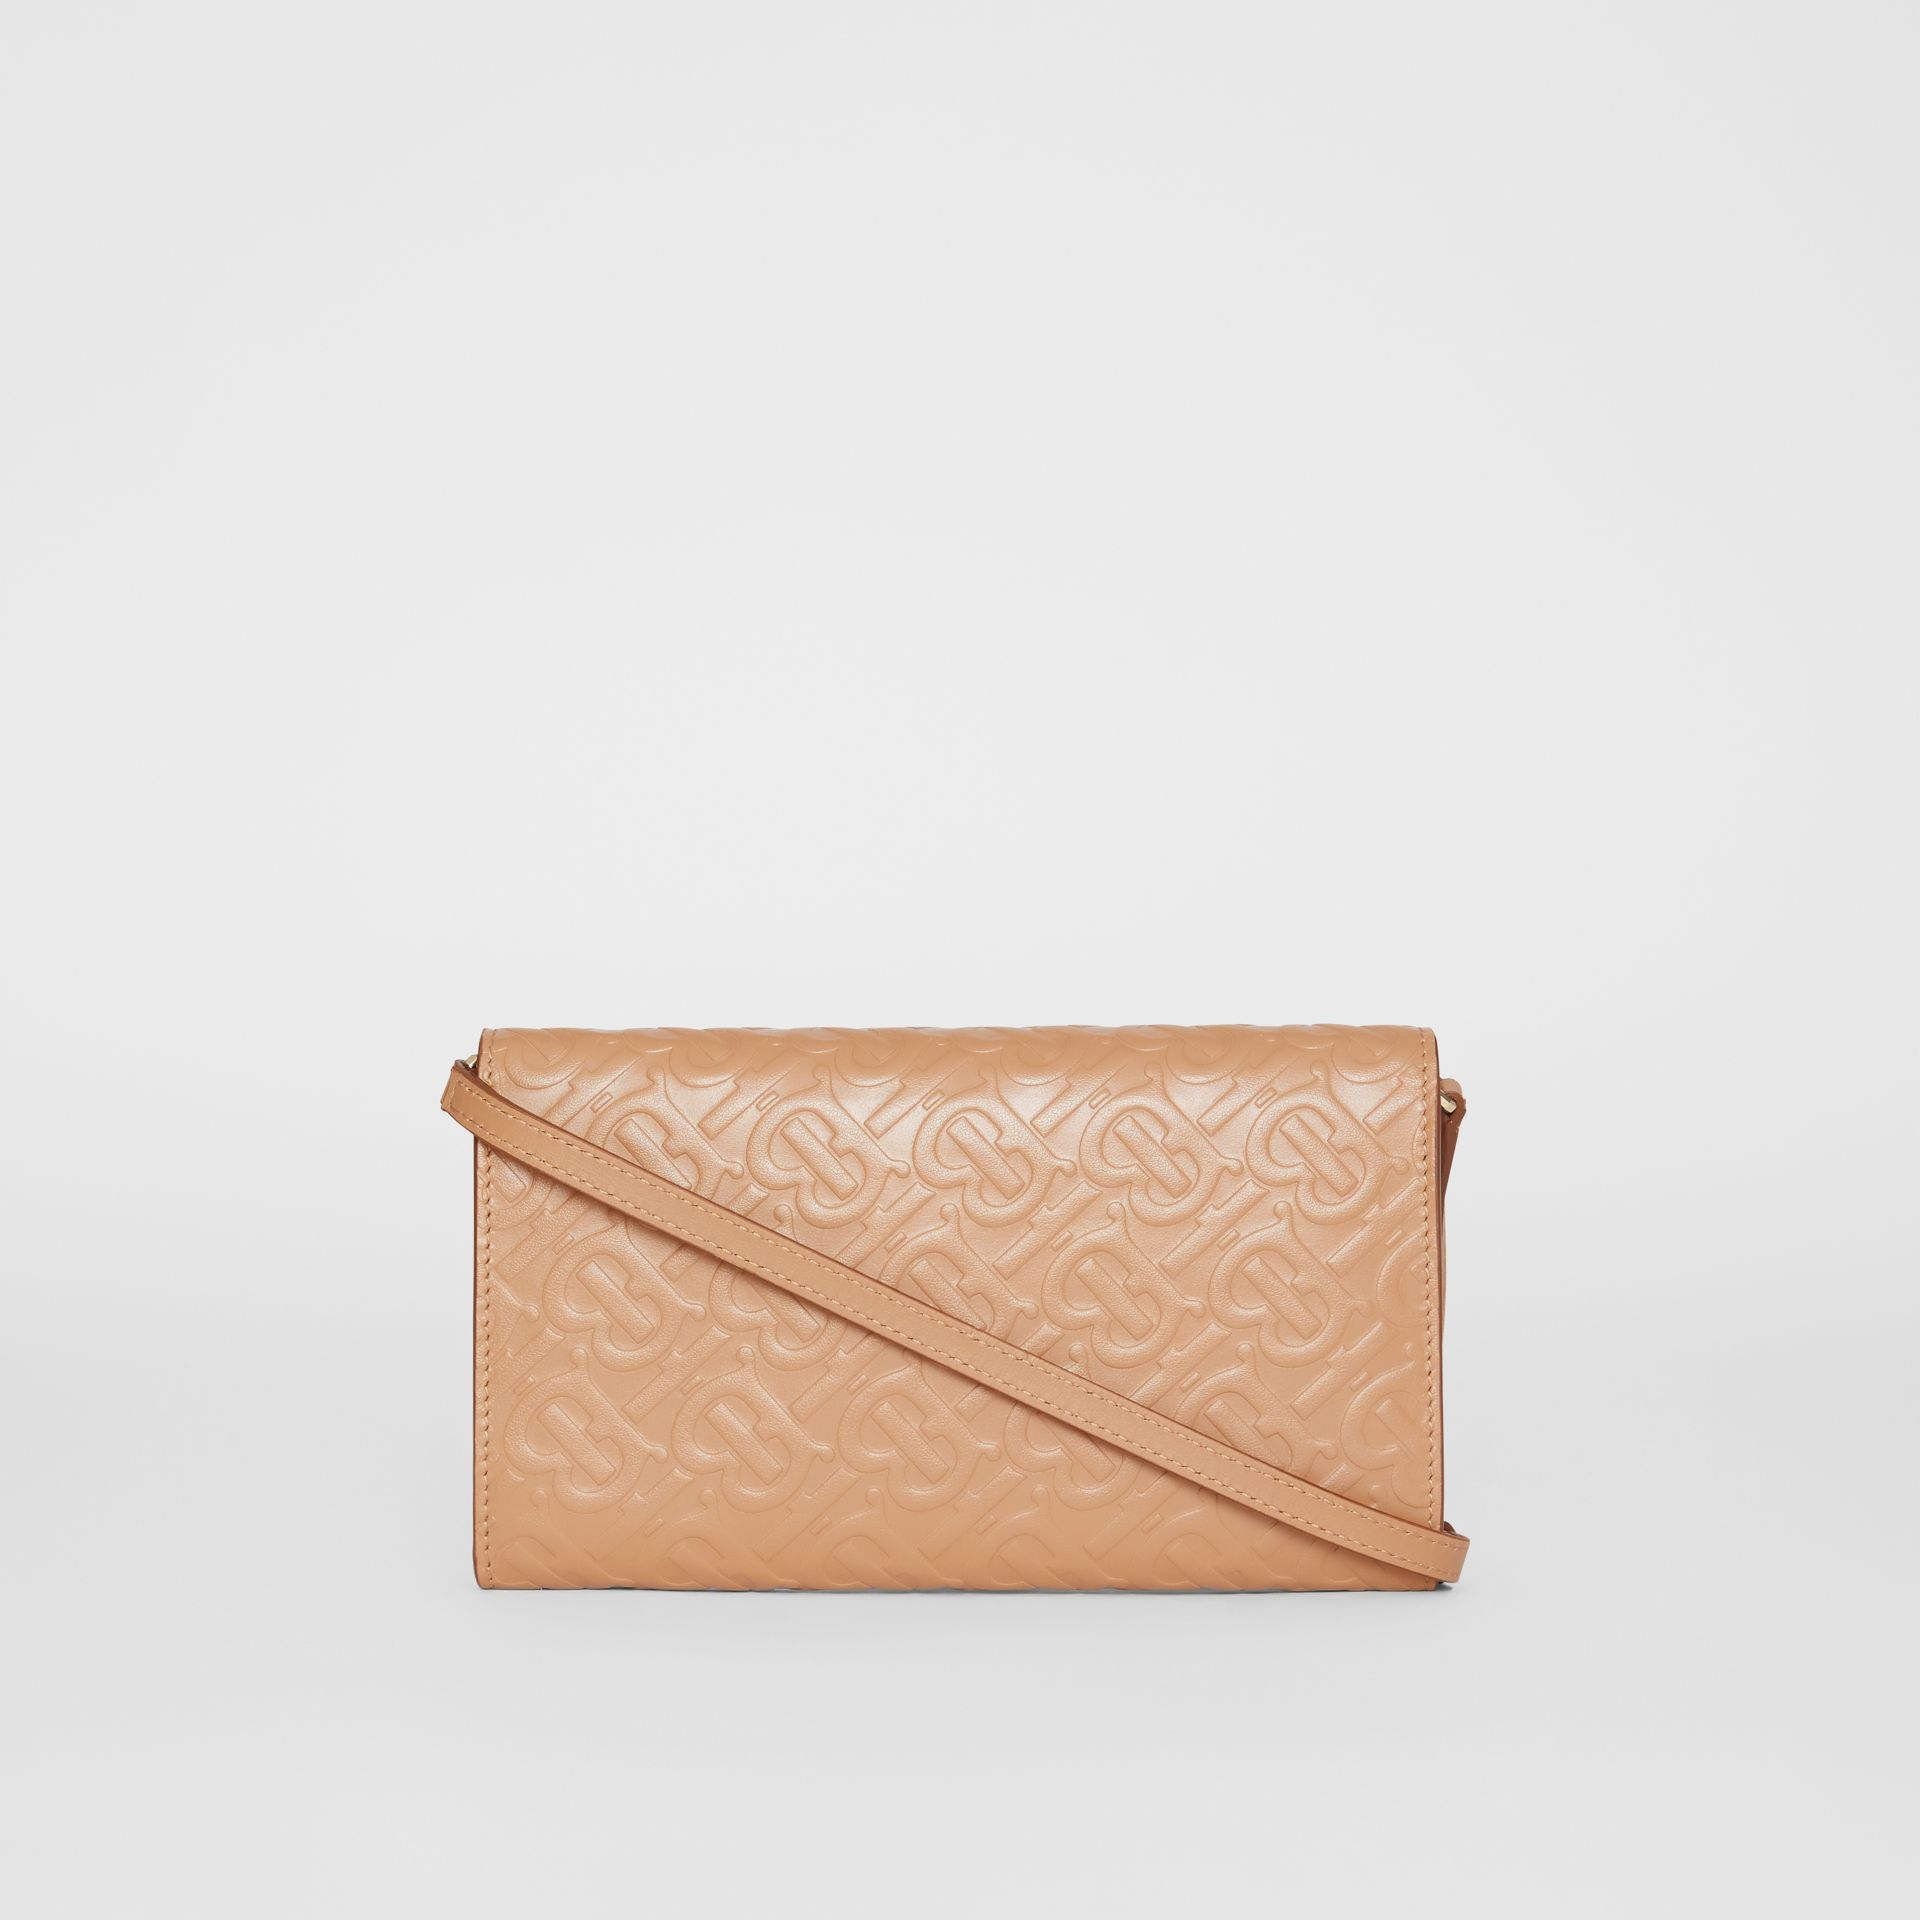 Monogram Leather Wallet with Detachable Strap in Light Camel - Women | Burberry United States - gallery image 7